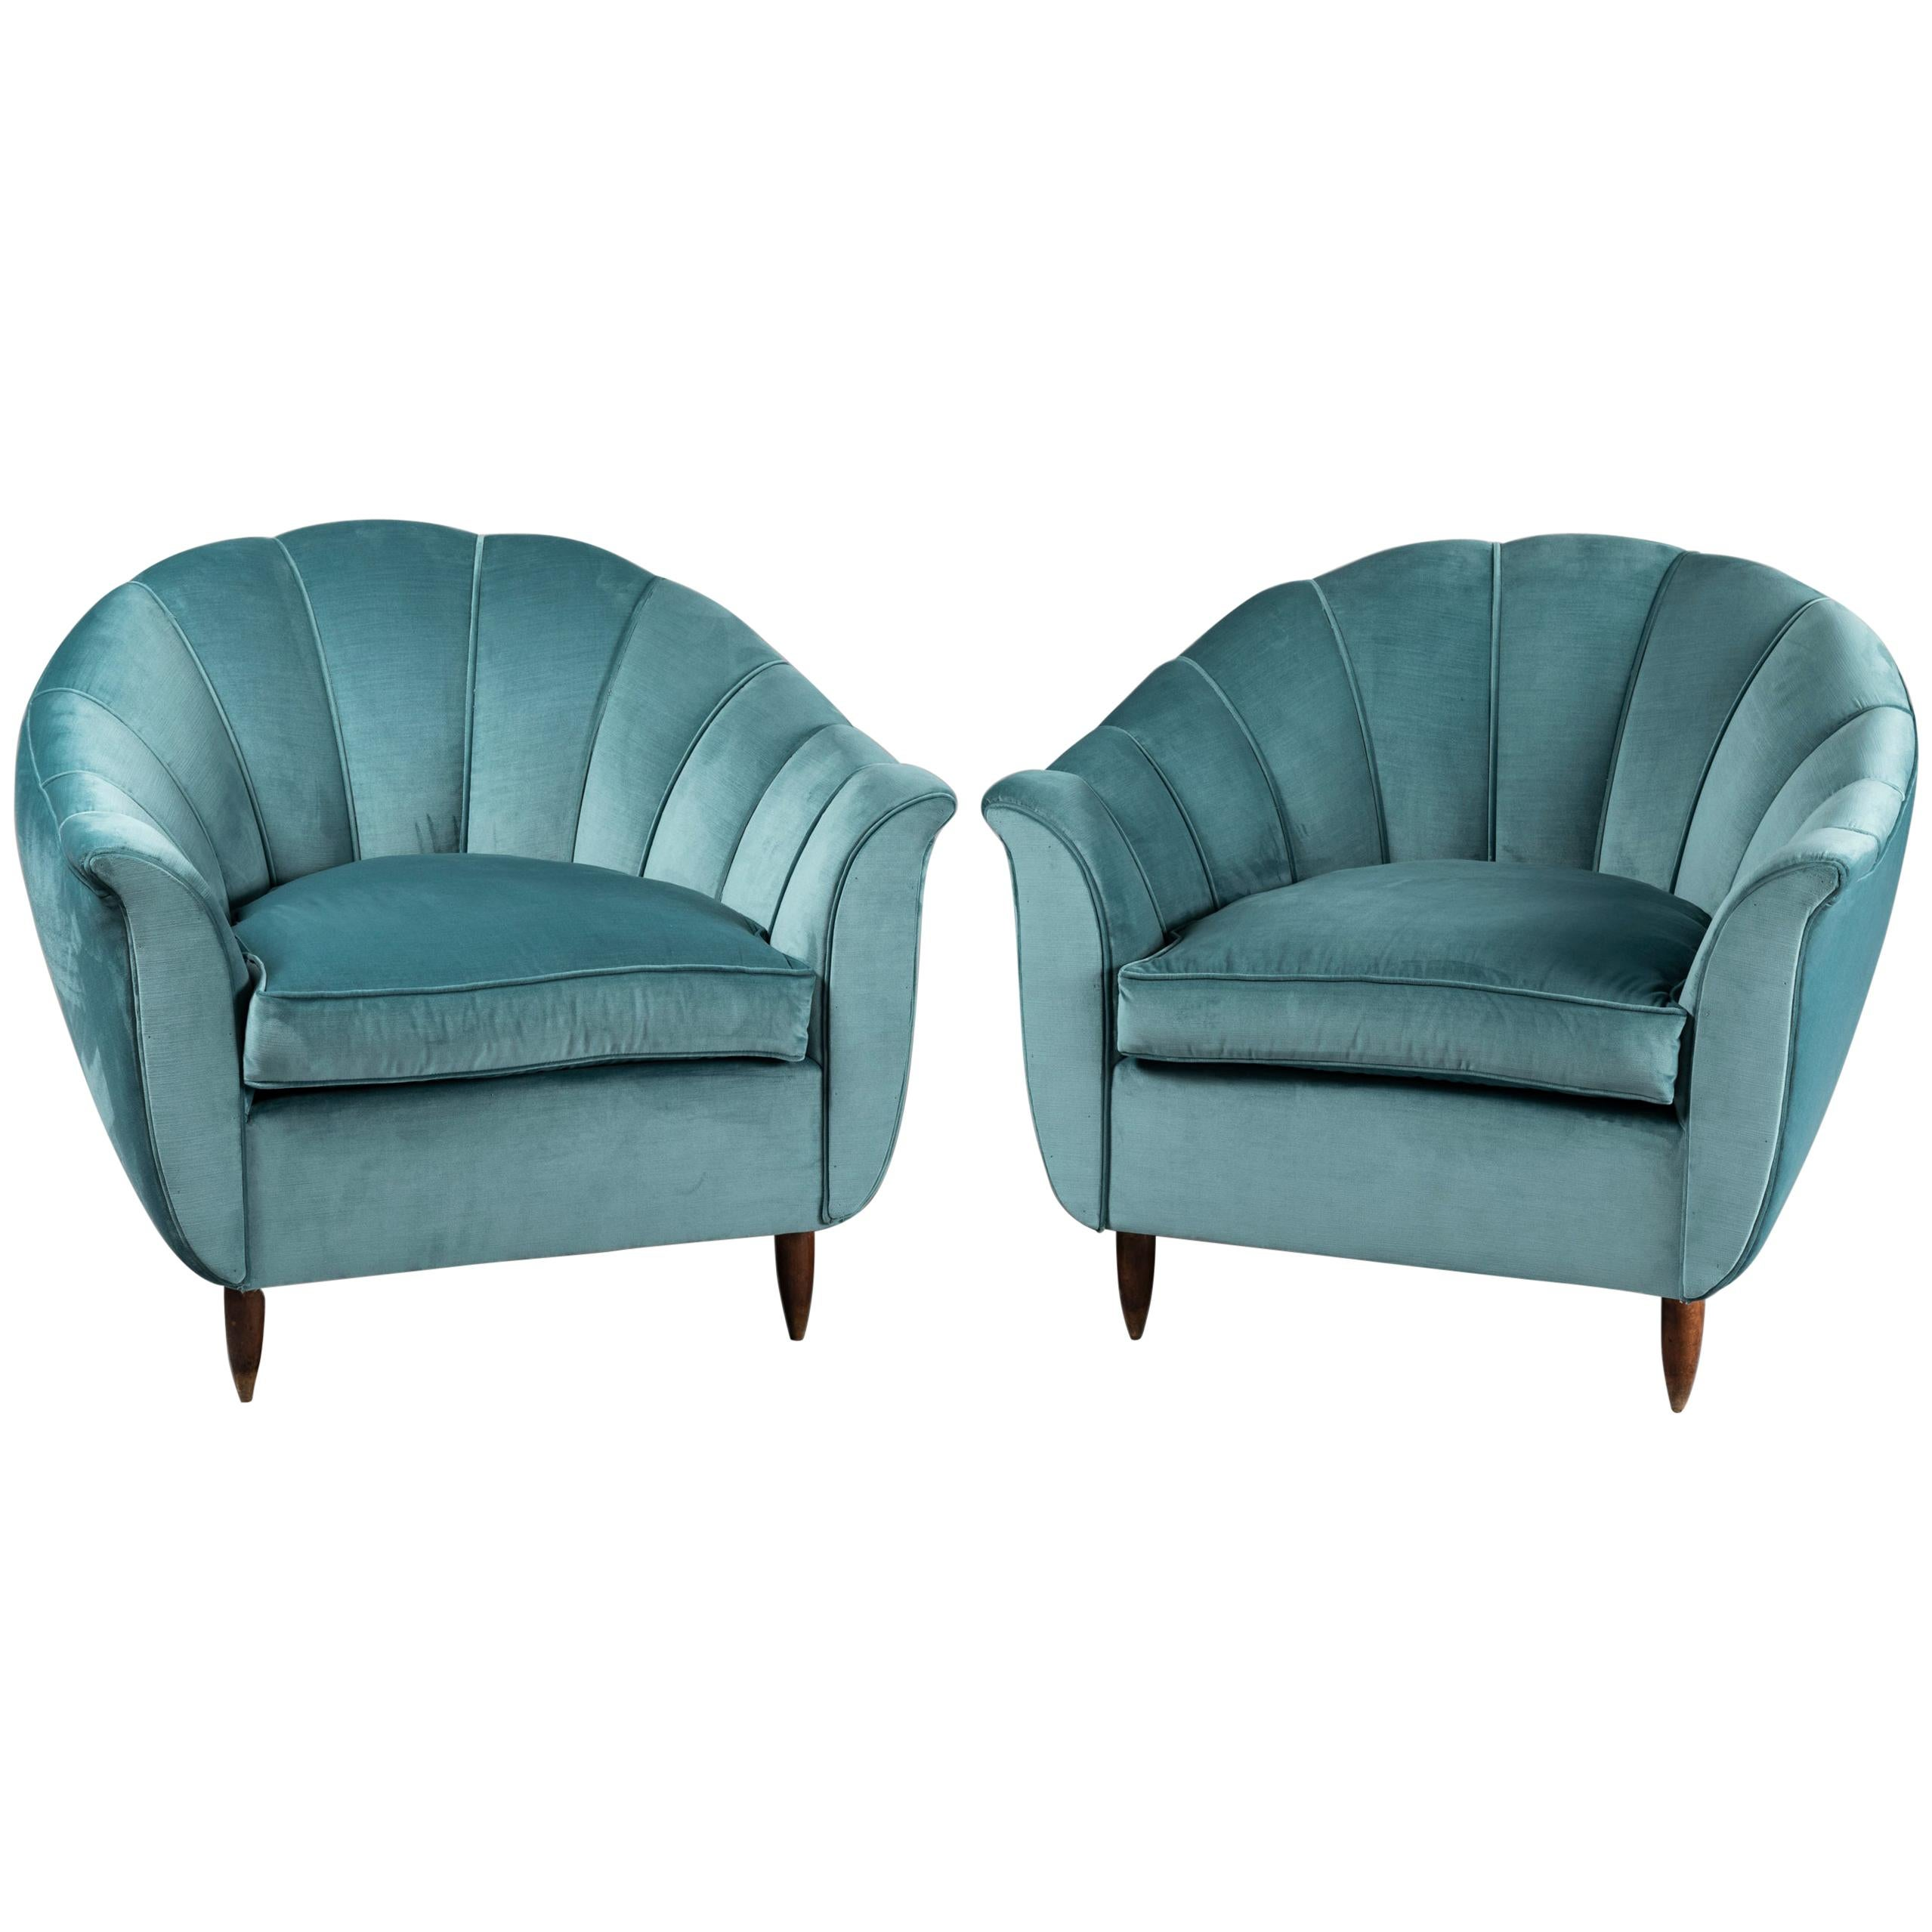 Cesare Lacca Pair of Armchairs Scalloped Shape, 1950s